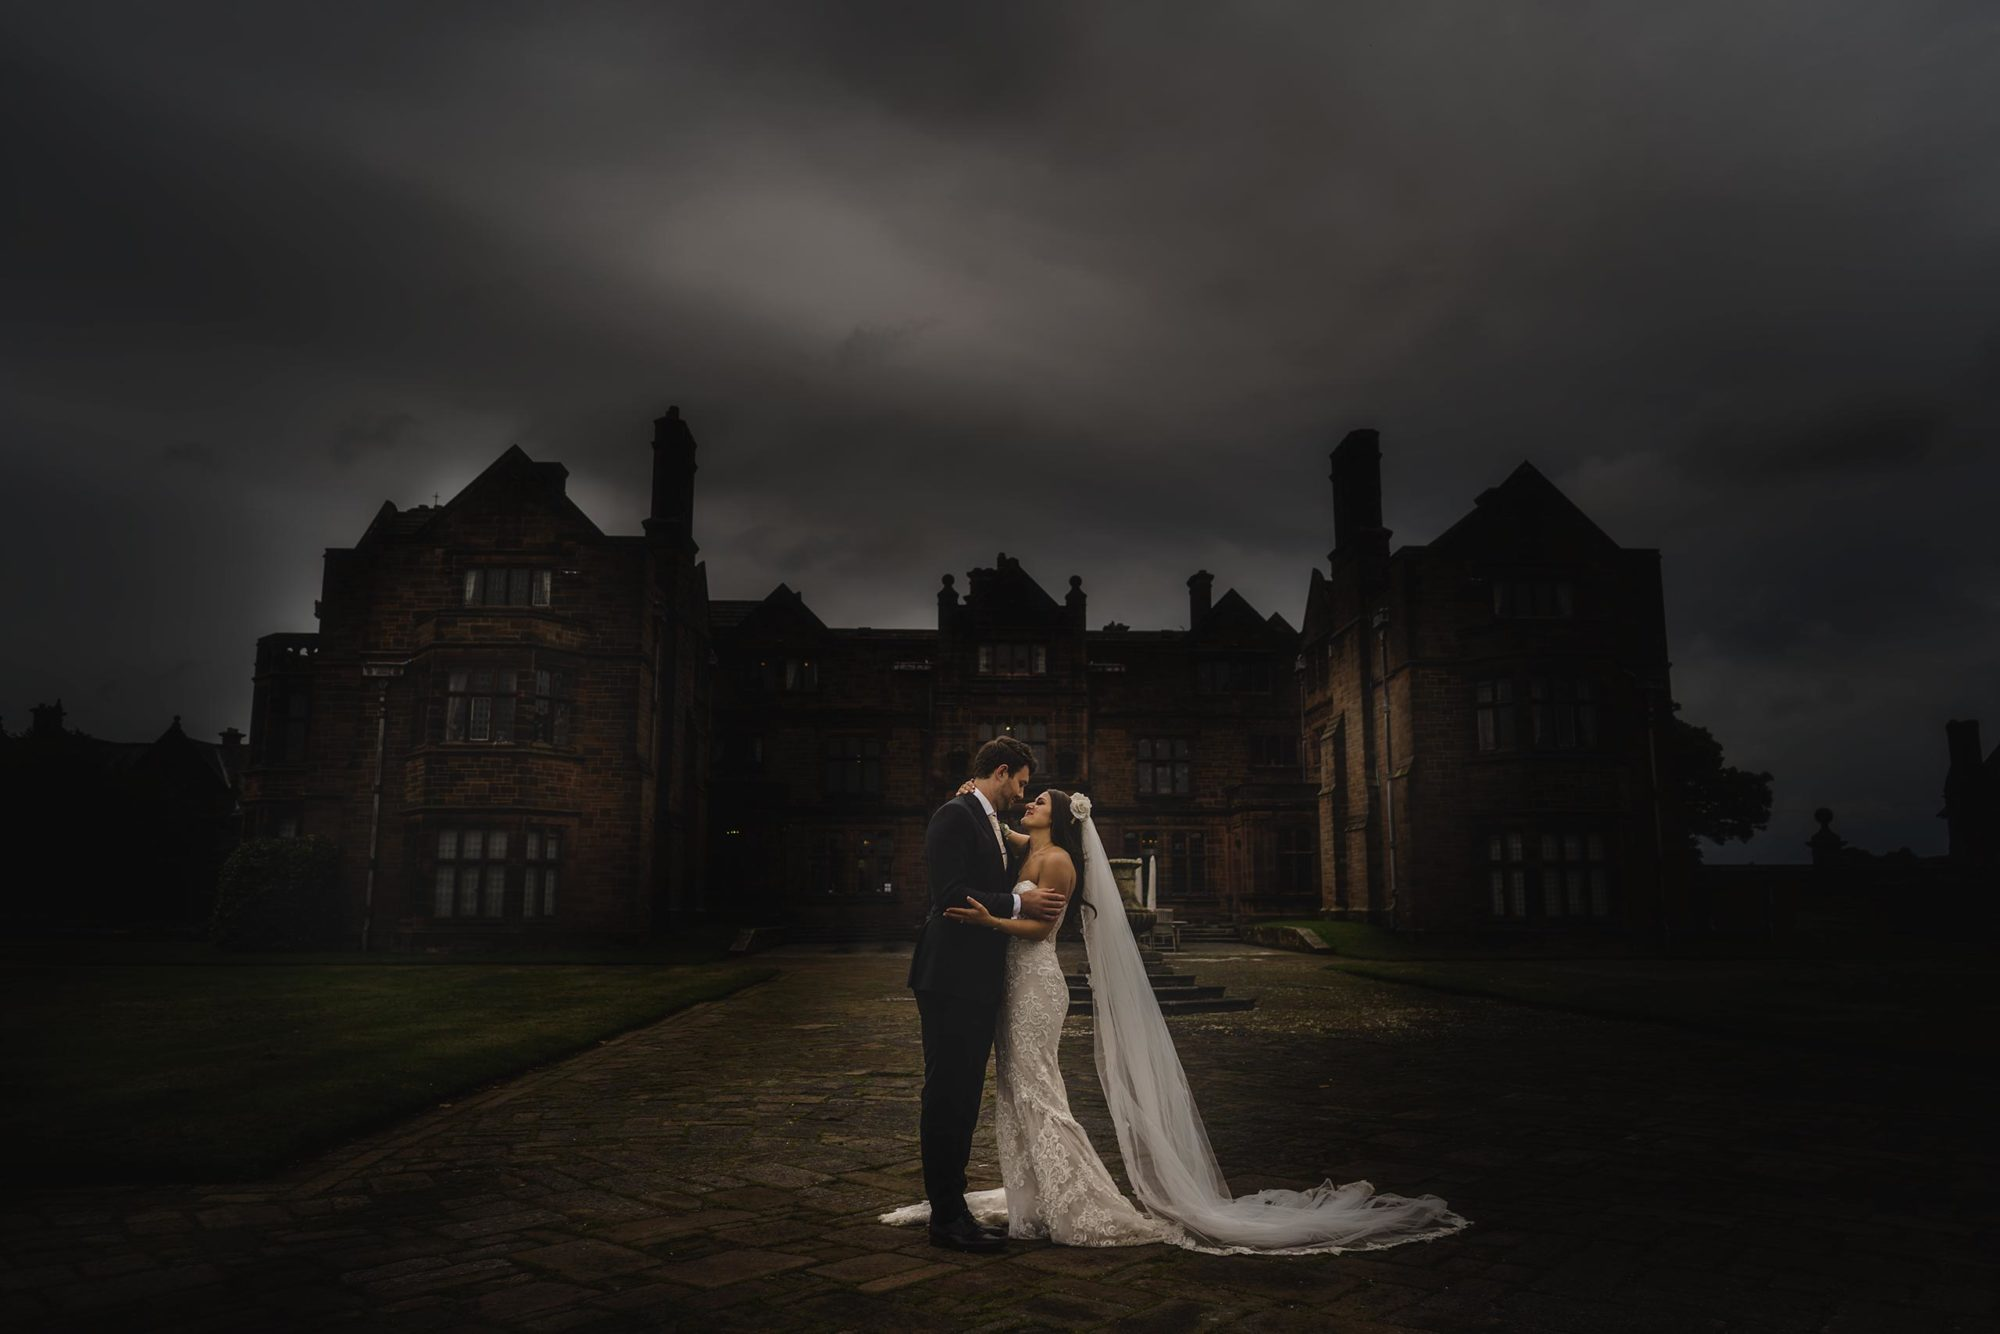 shropshire wedding photographer captures images of bride and groom at Thornton Manor